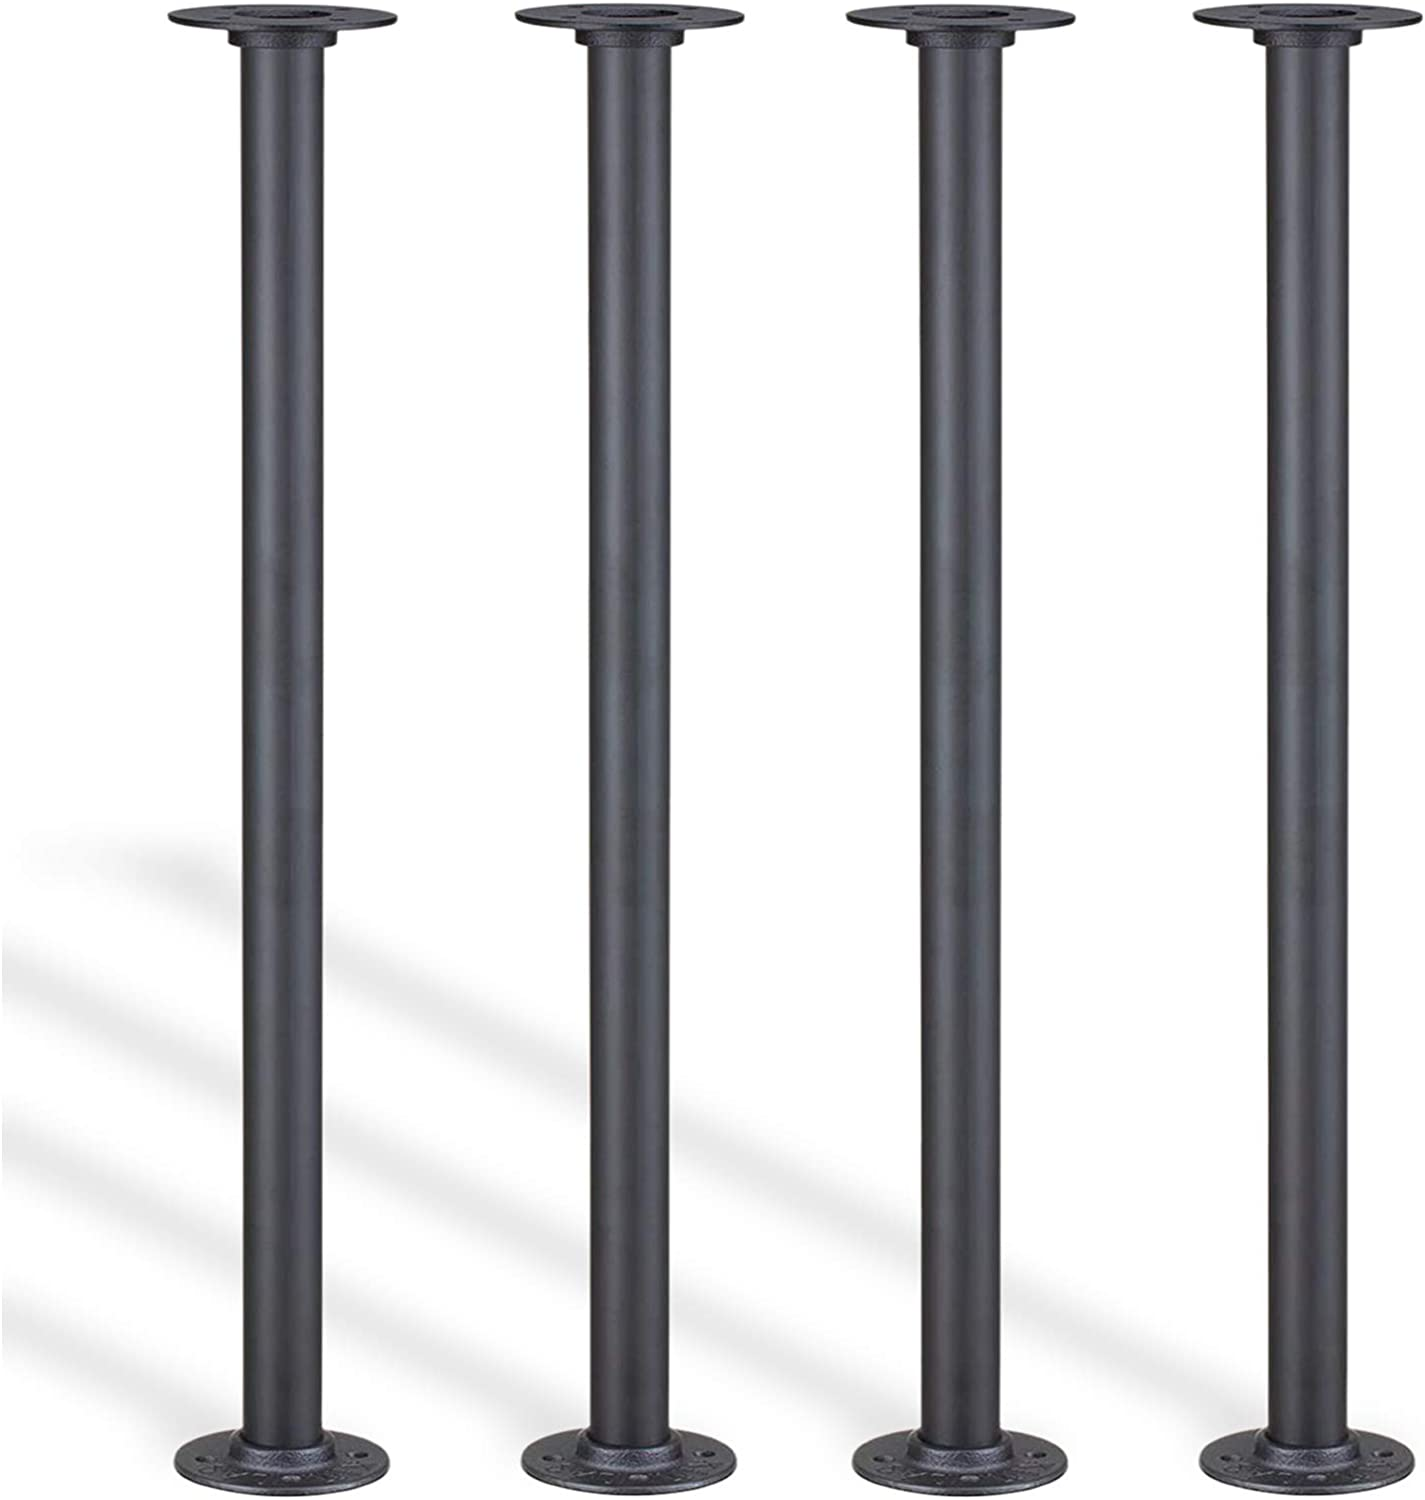 Hanone Pipe Table Legs 28″ Metal Desk Legs with Non-slip Mat DIY for Custom Vintage Industrial Loft Office Bench Table and Furniture Sturdy Shelf Support - Set of 4 (Black), Heavy Duty Max.200lbs/ Leg